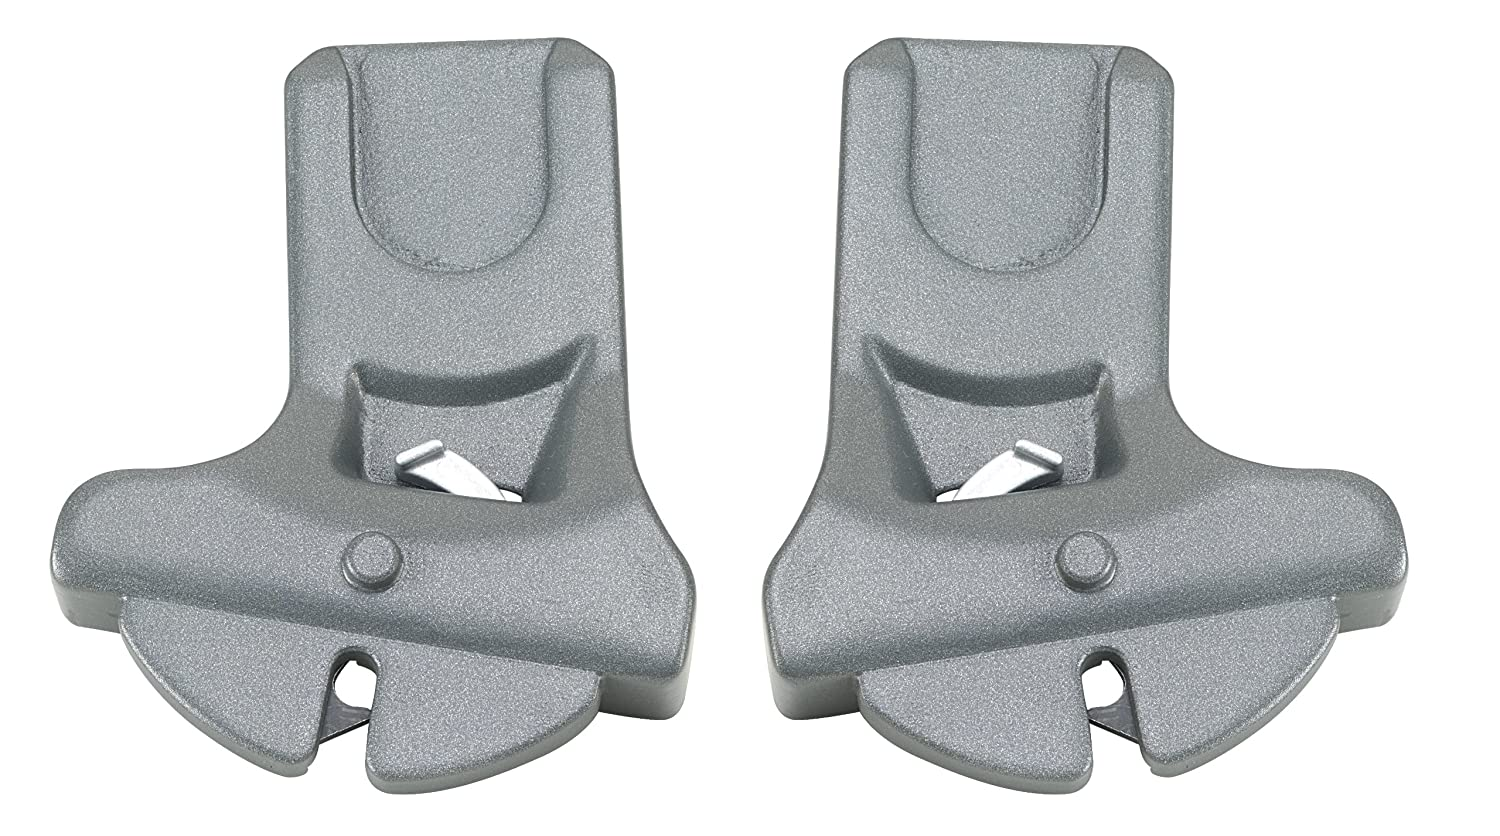 Inglesina Trilogy/Quad Infant Car Seat Adapter A098BE0061MX